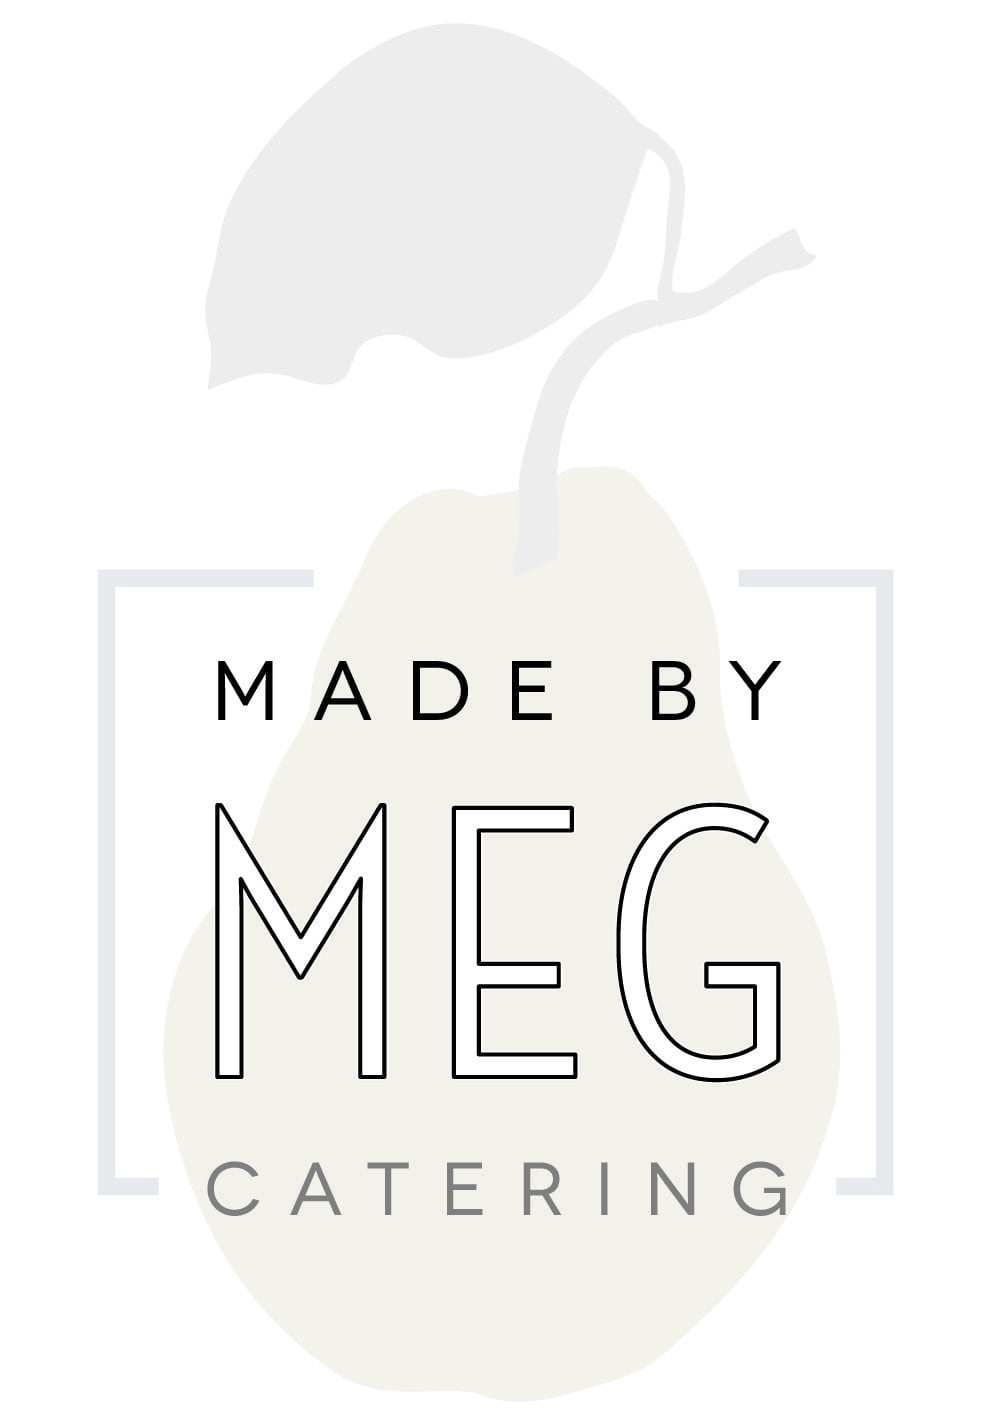 Made by Meg Catering